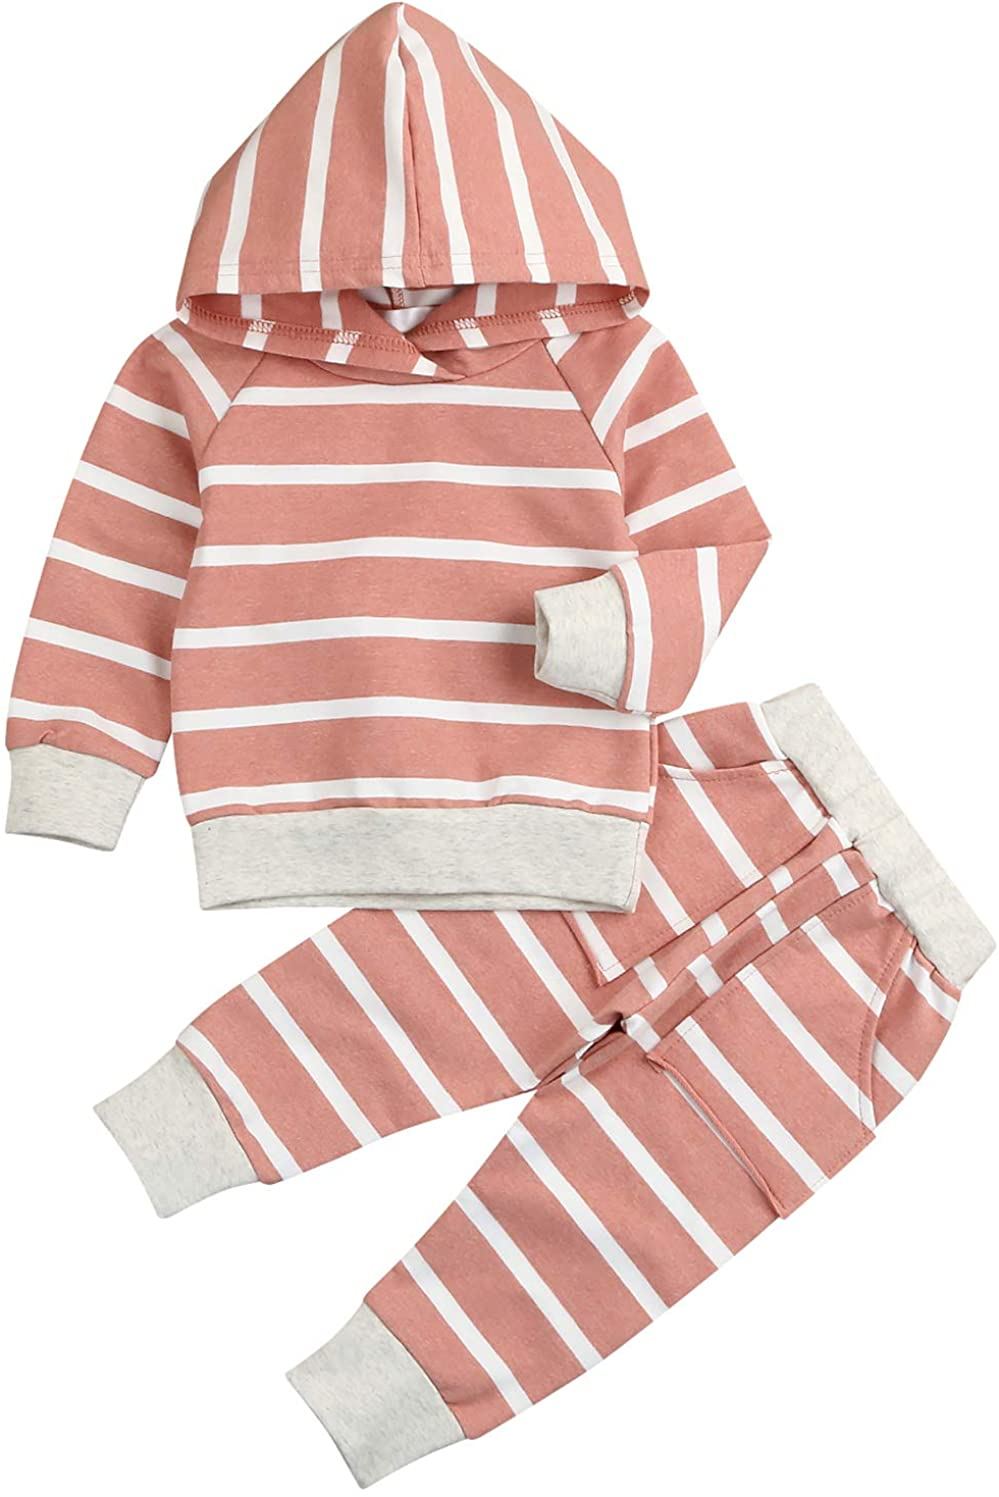 Baby Girls Winter Clothes Set Long Sleeve Striped Hoodie Sweatshirt Pants Outfit Sets for Newborn Infant Toddler Babies